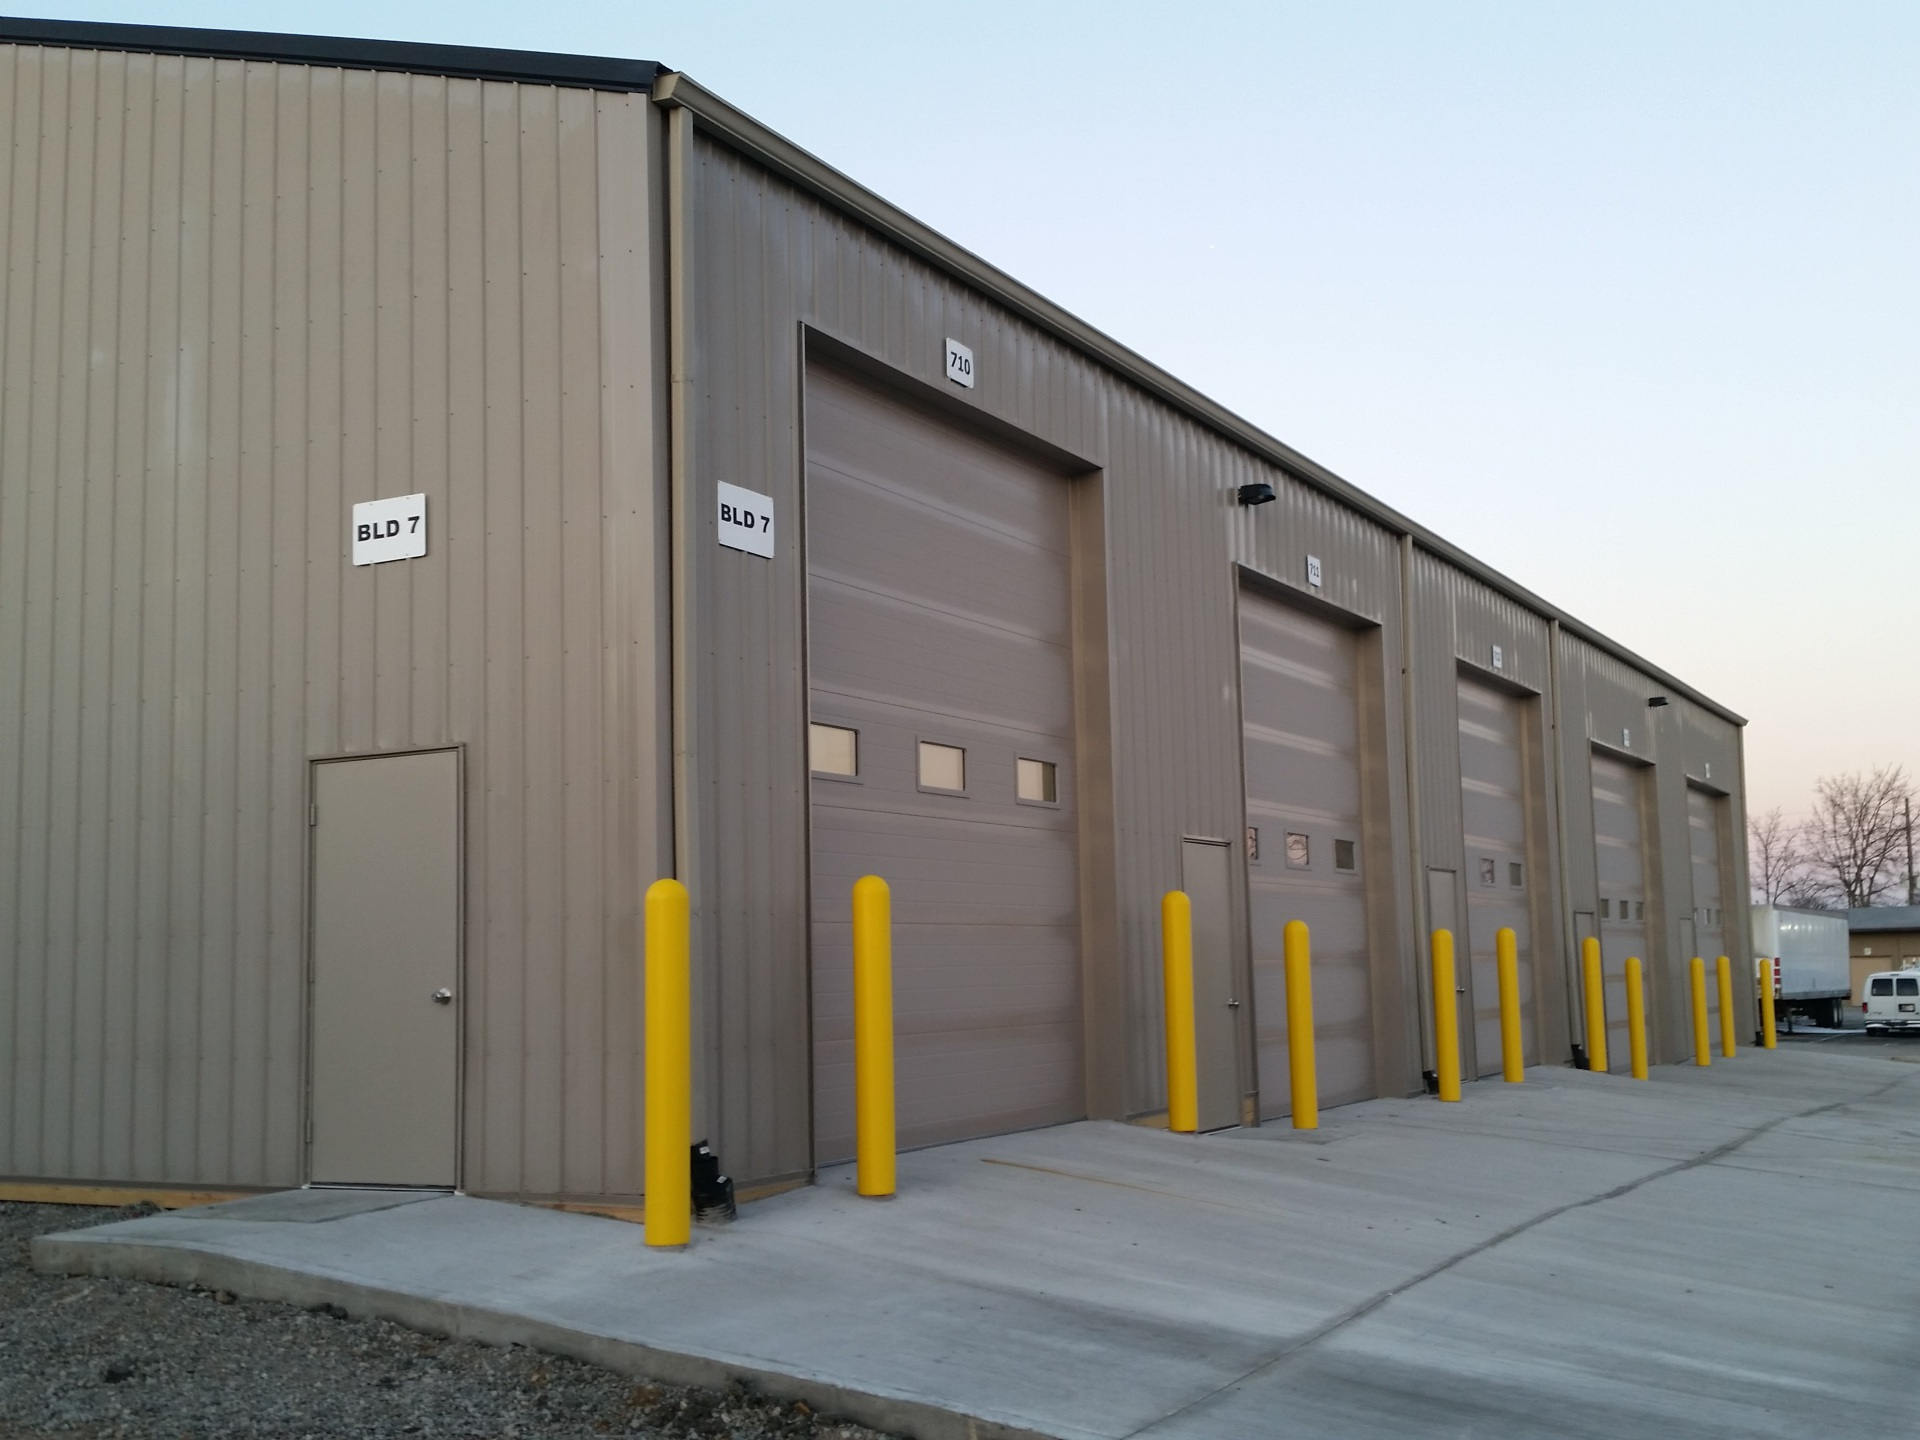 Commercial Self Storage Building #7